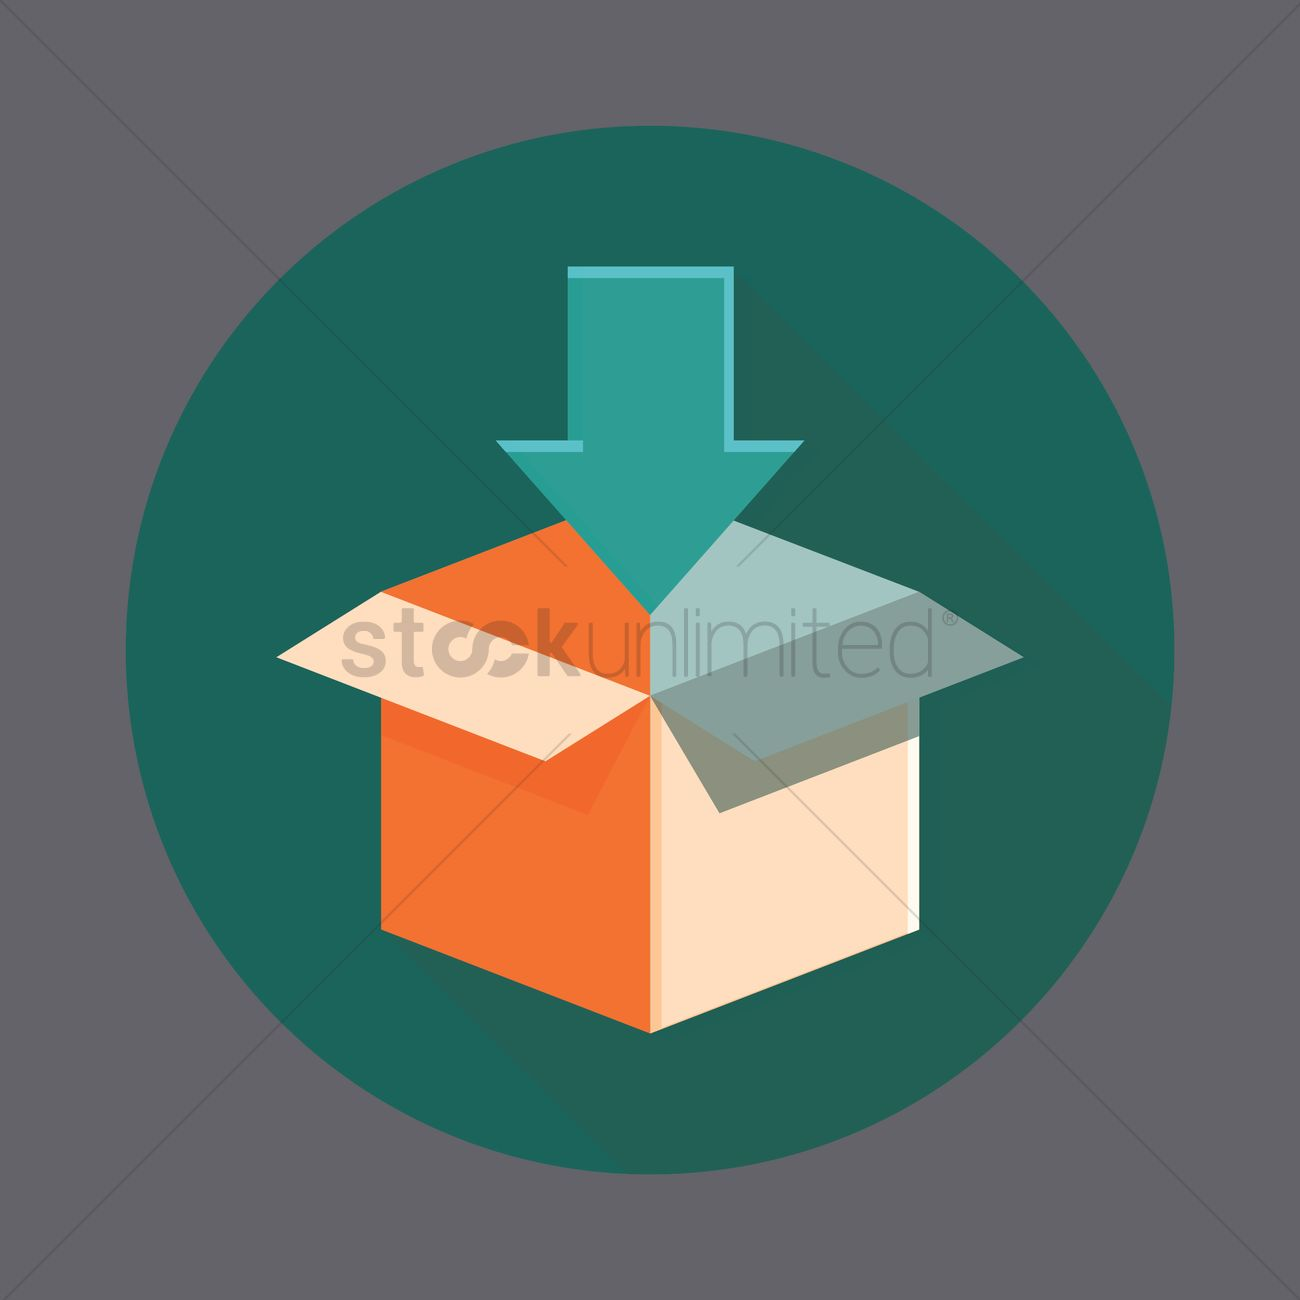 Opened cardboard box with arrow pointing down vector image 1378948 opened cardboard box with arrow pointing down vector graphic biocorpaavc Choice Image